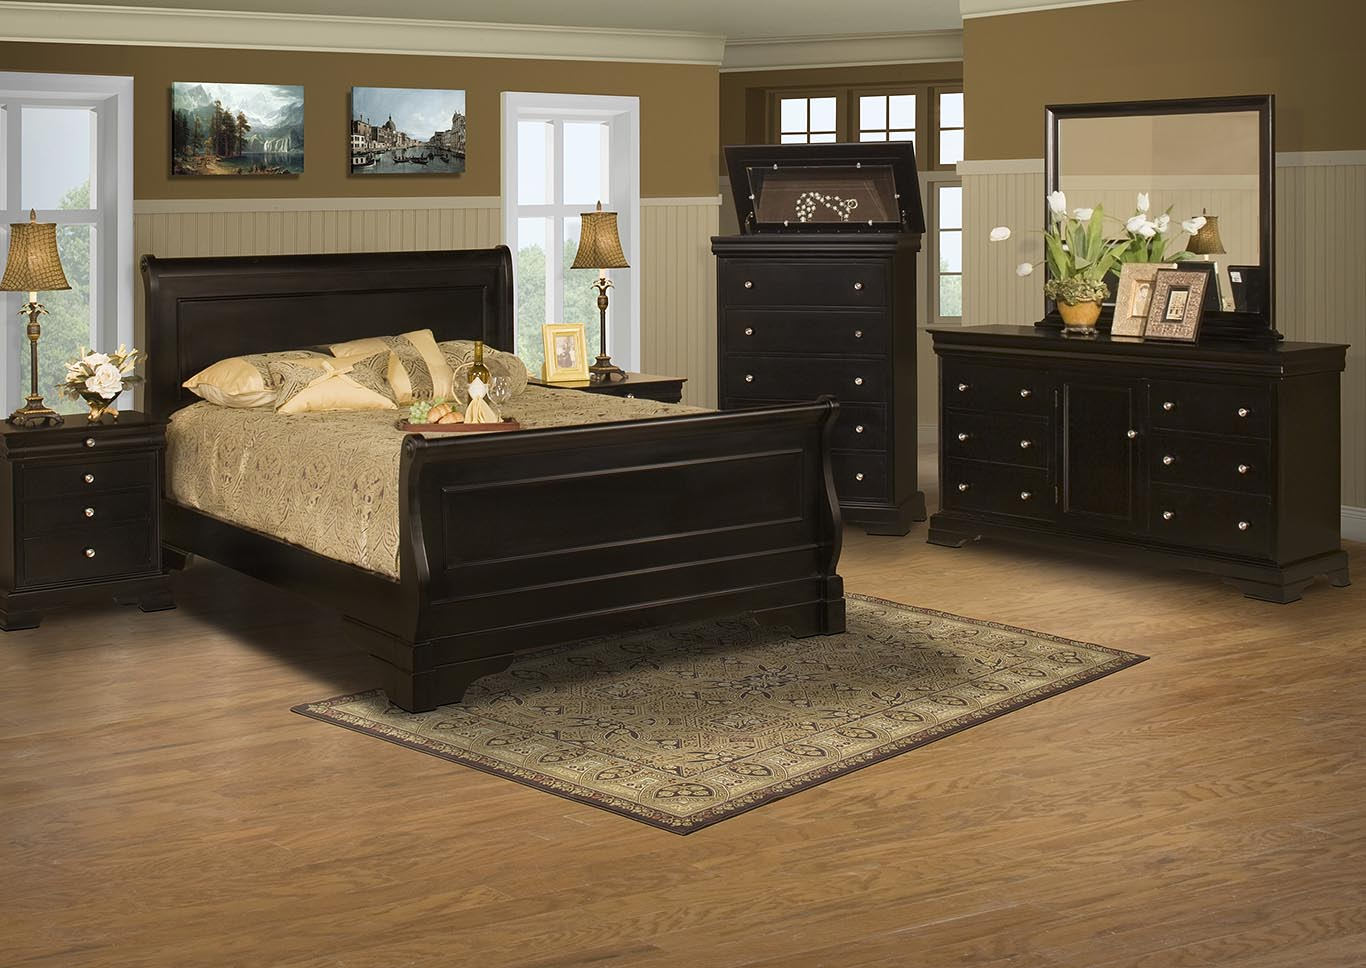 Belle Rose Black Cherry California King Bed w/Dresser and Mirror,New Classic